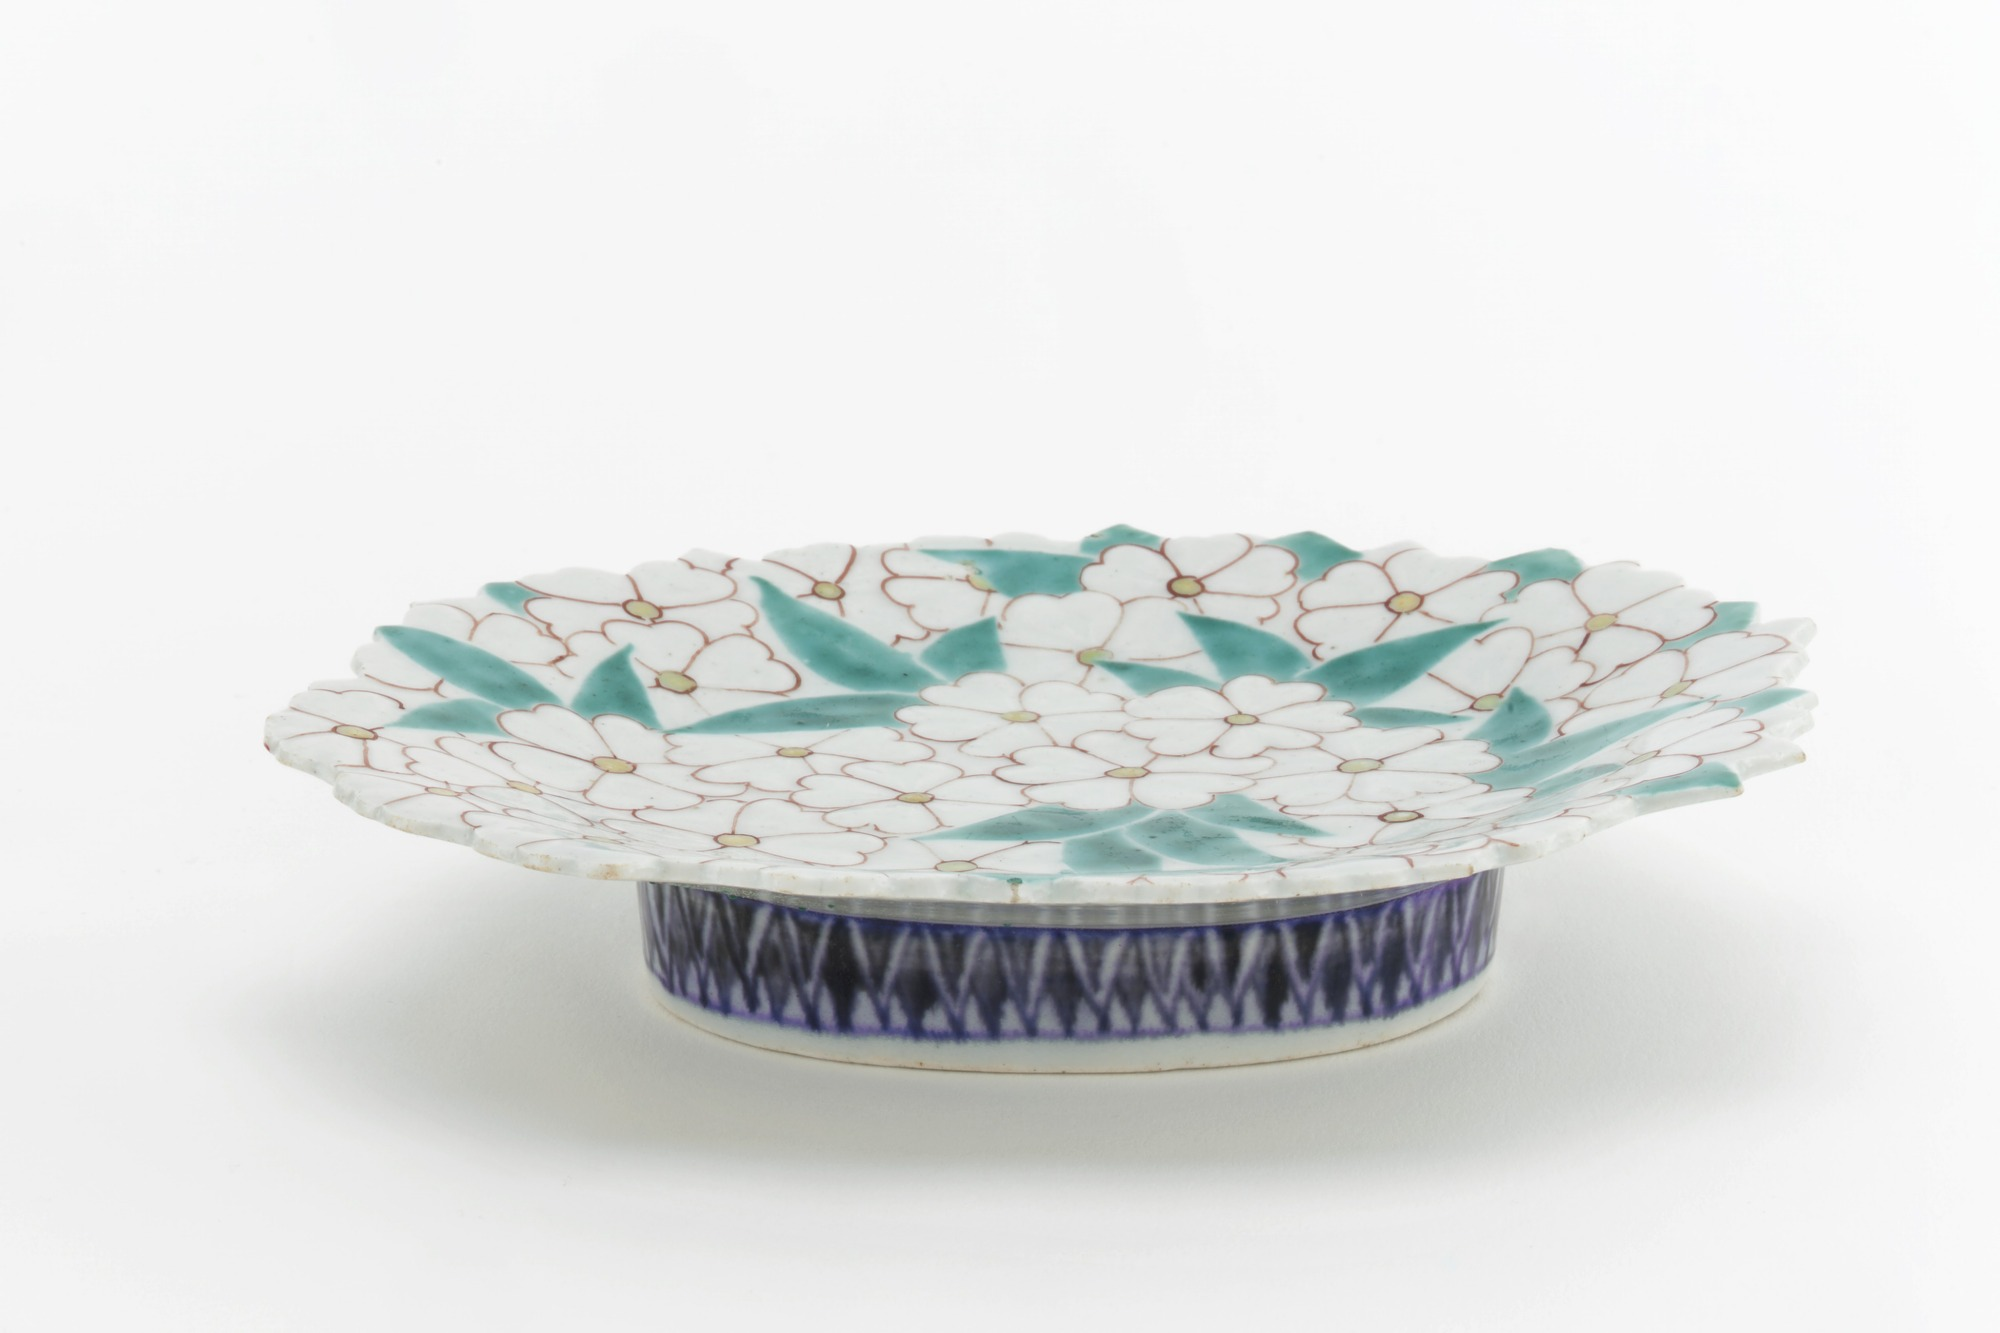 3/4 profile: Nabeshima ware dish molded in form of spray of cherry blossoms